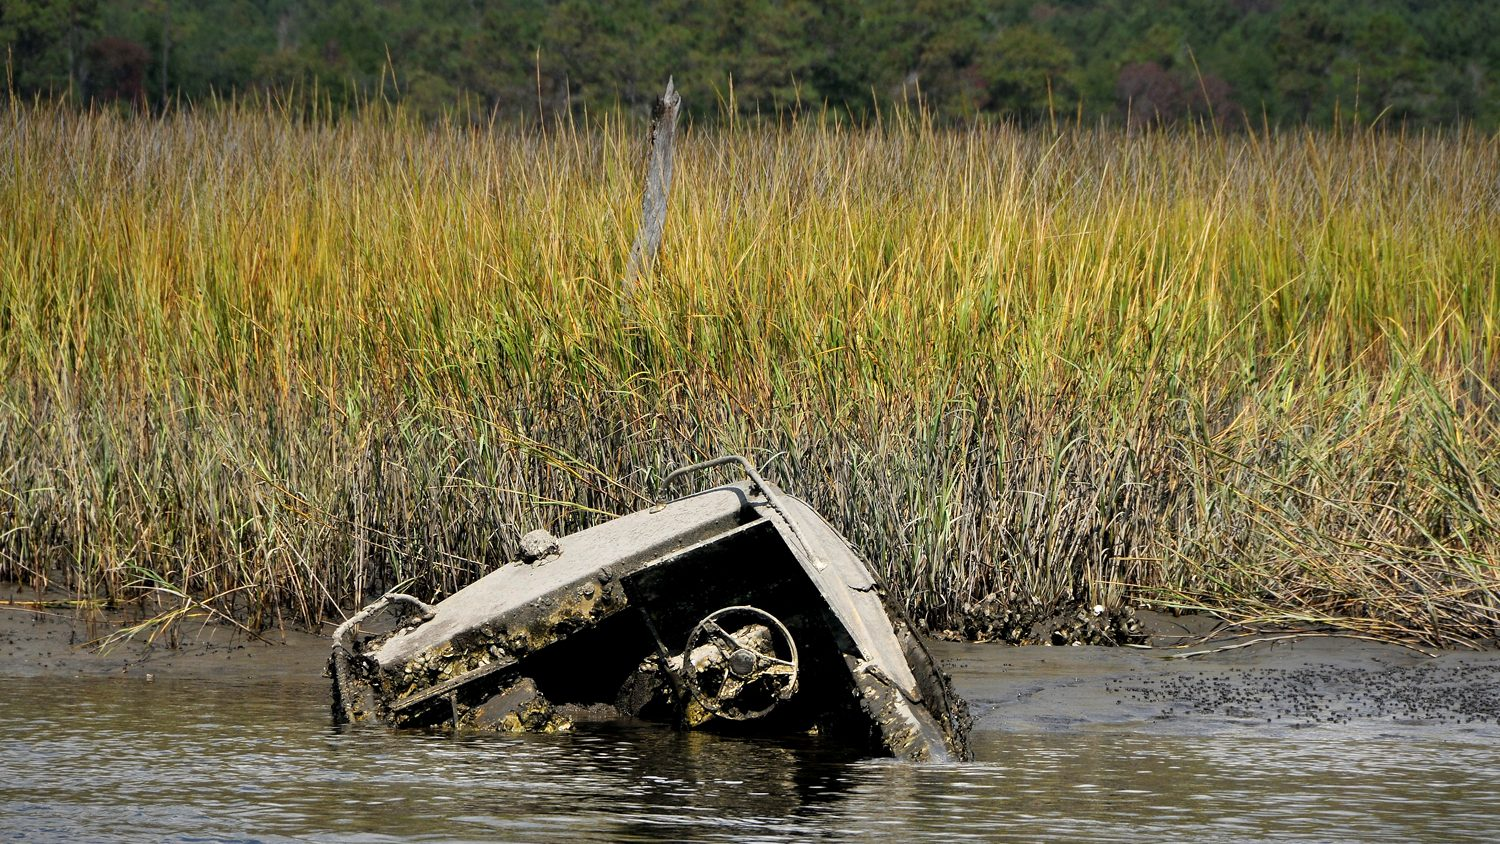 A sunken fishing boat on waterway near Supply, NC